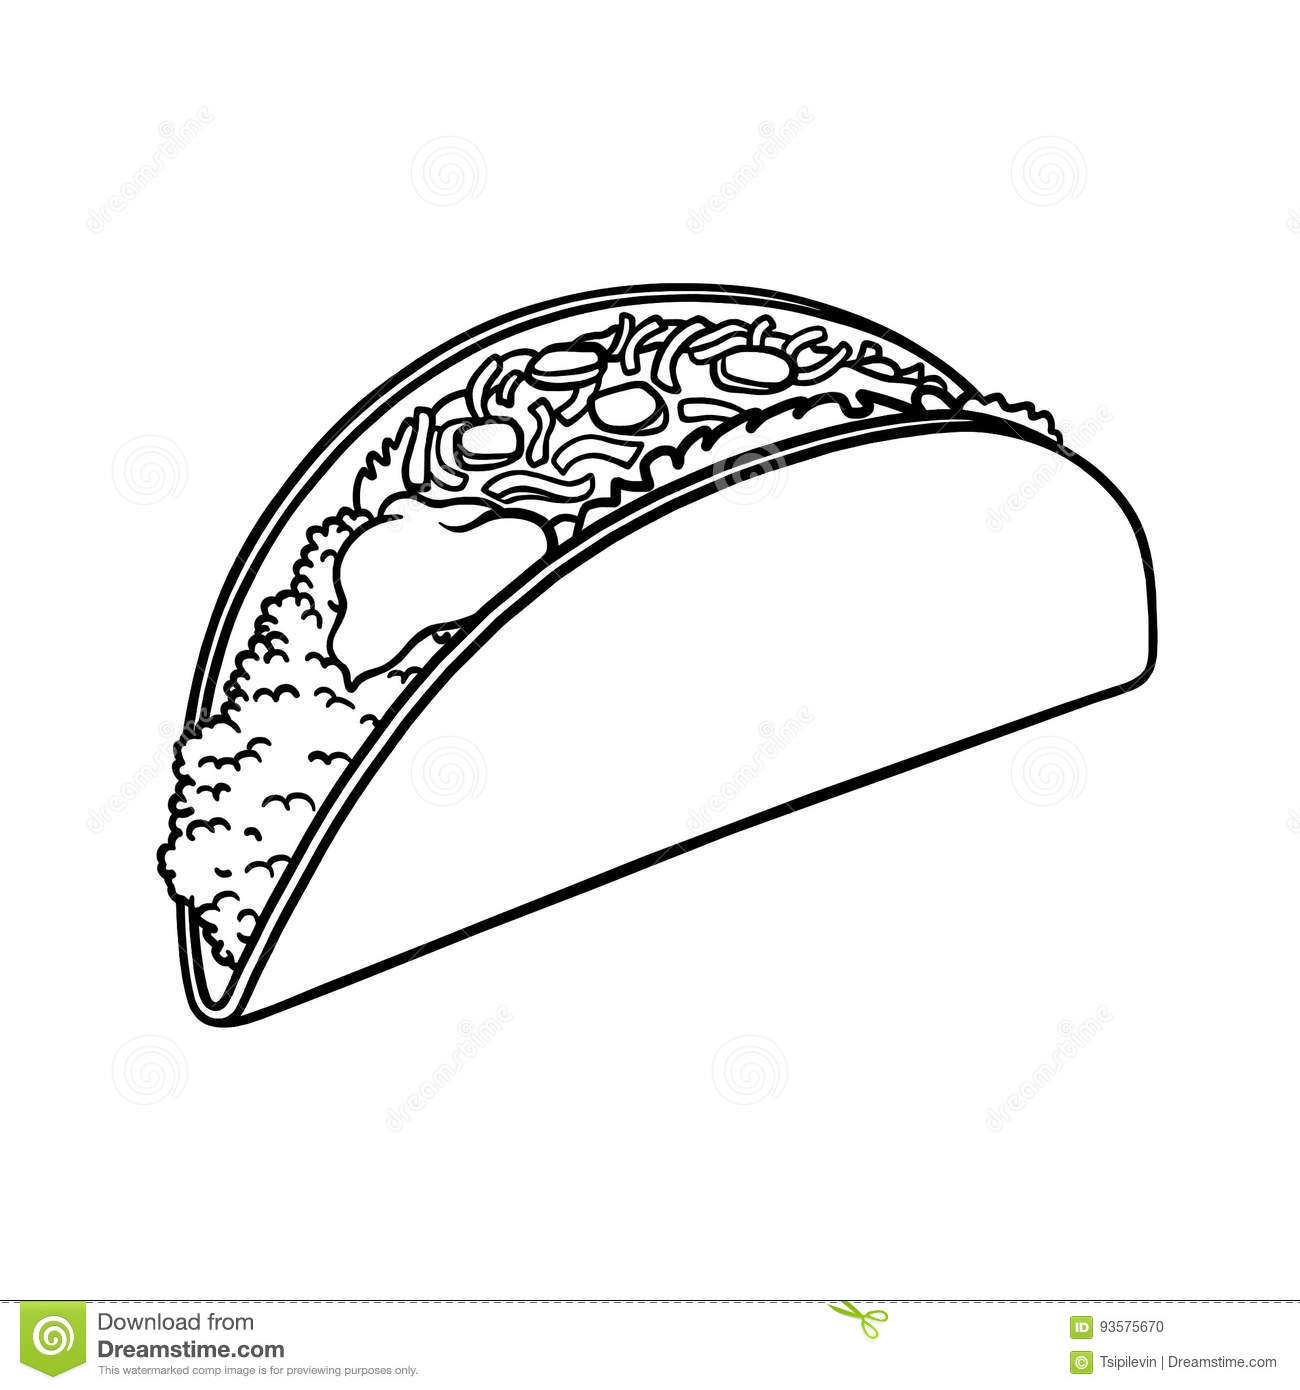 Taco outline illustration stock illustration. Image of